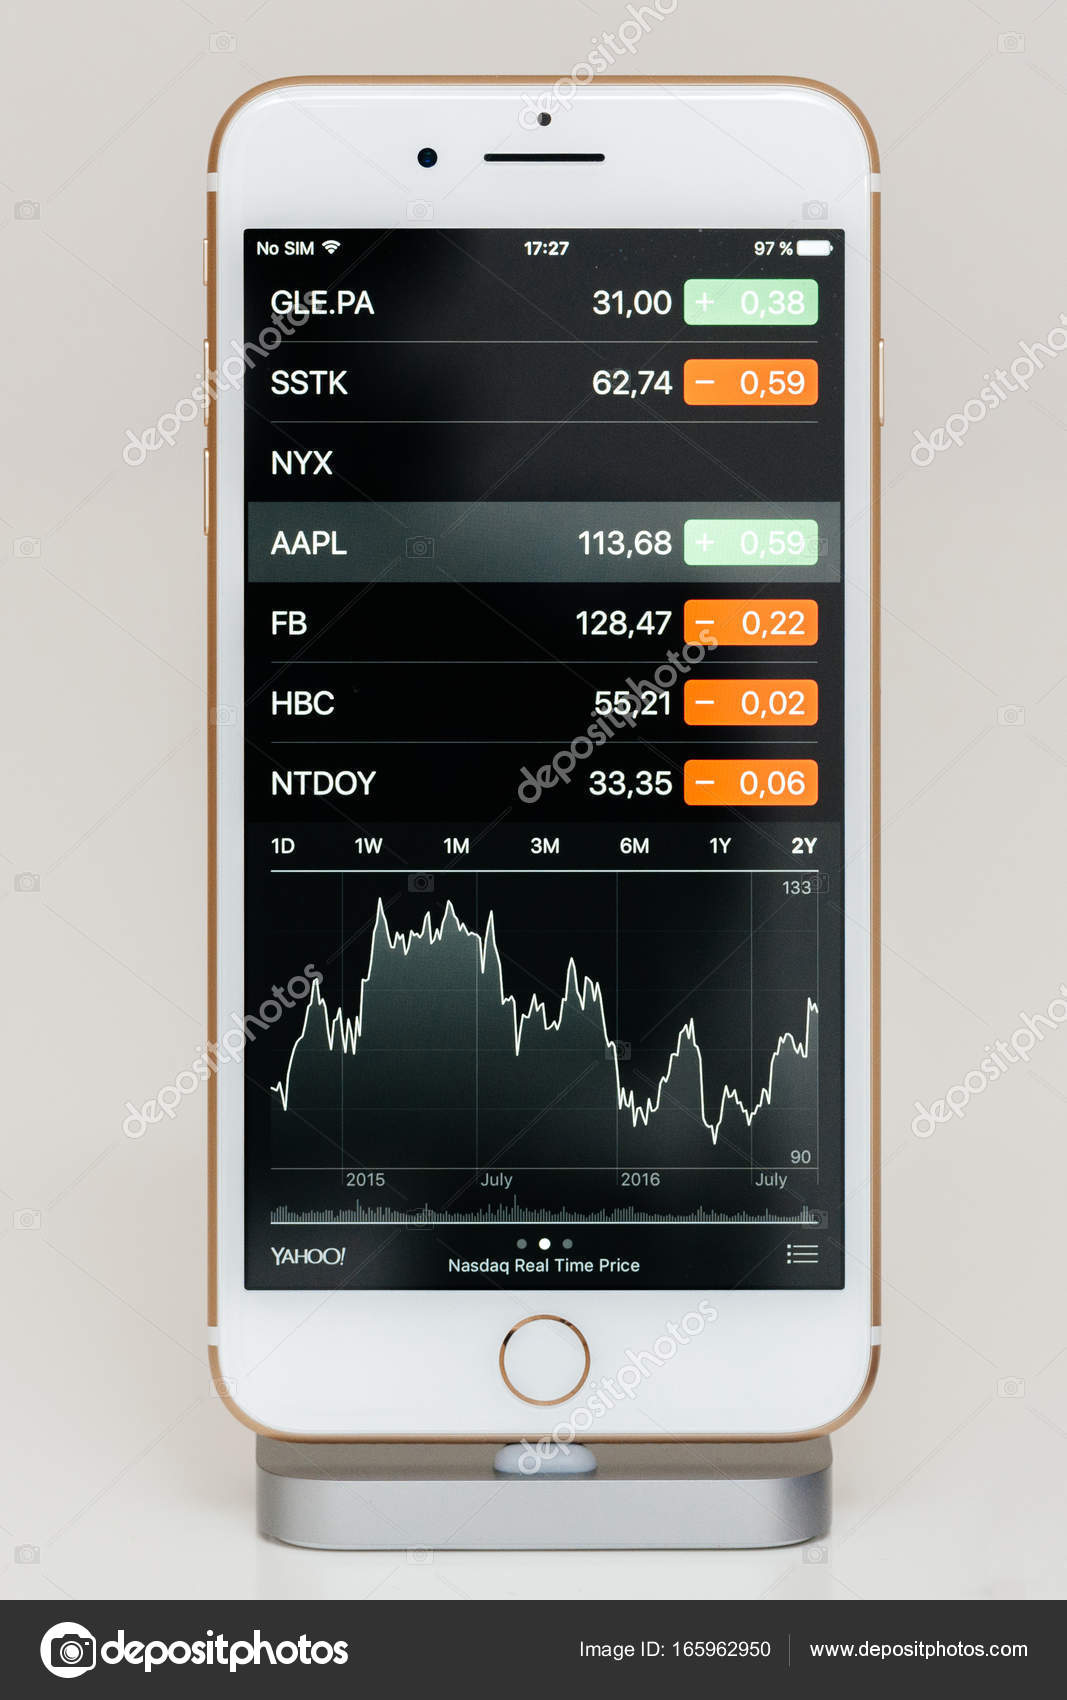 Apple stock price on iphone 7 plus the application software.